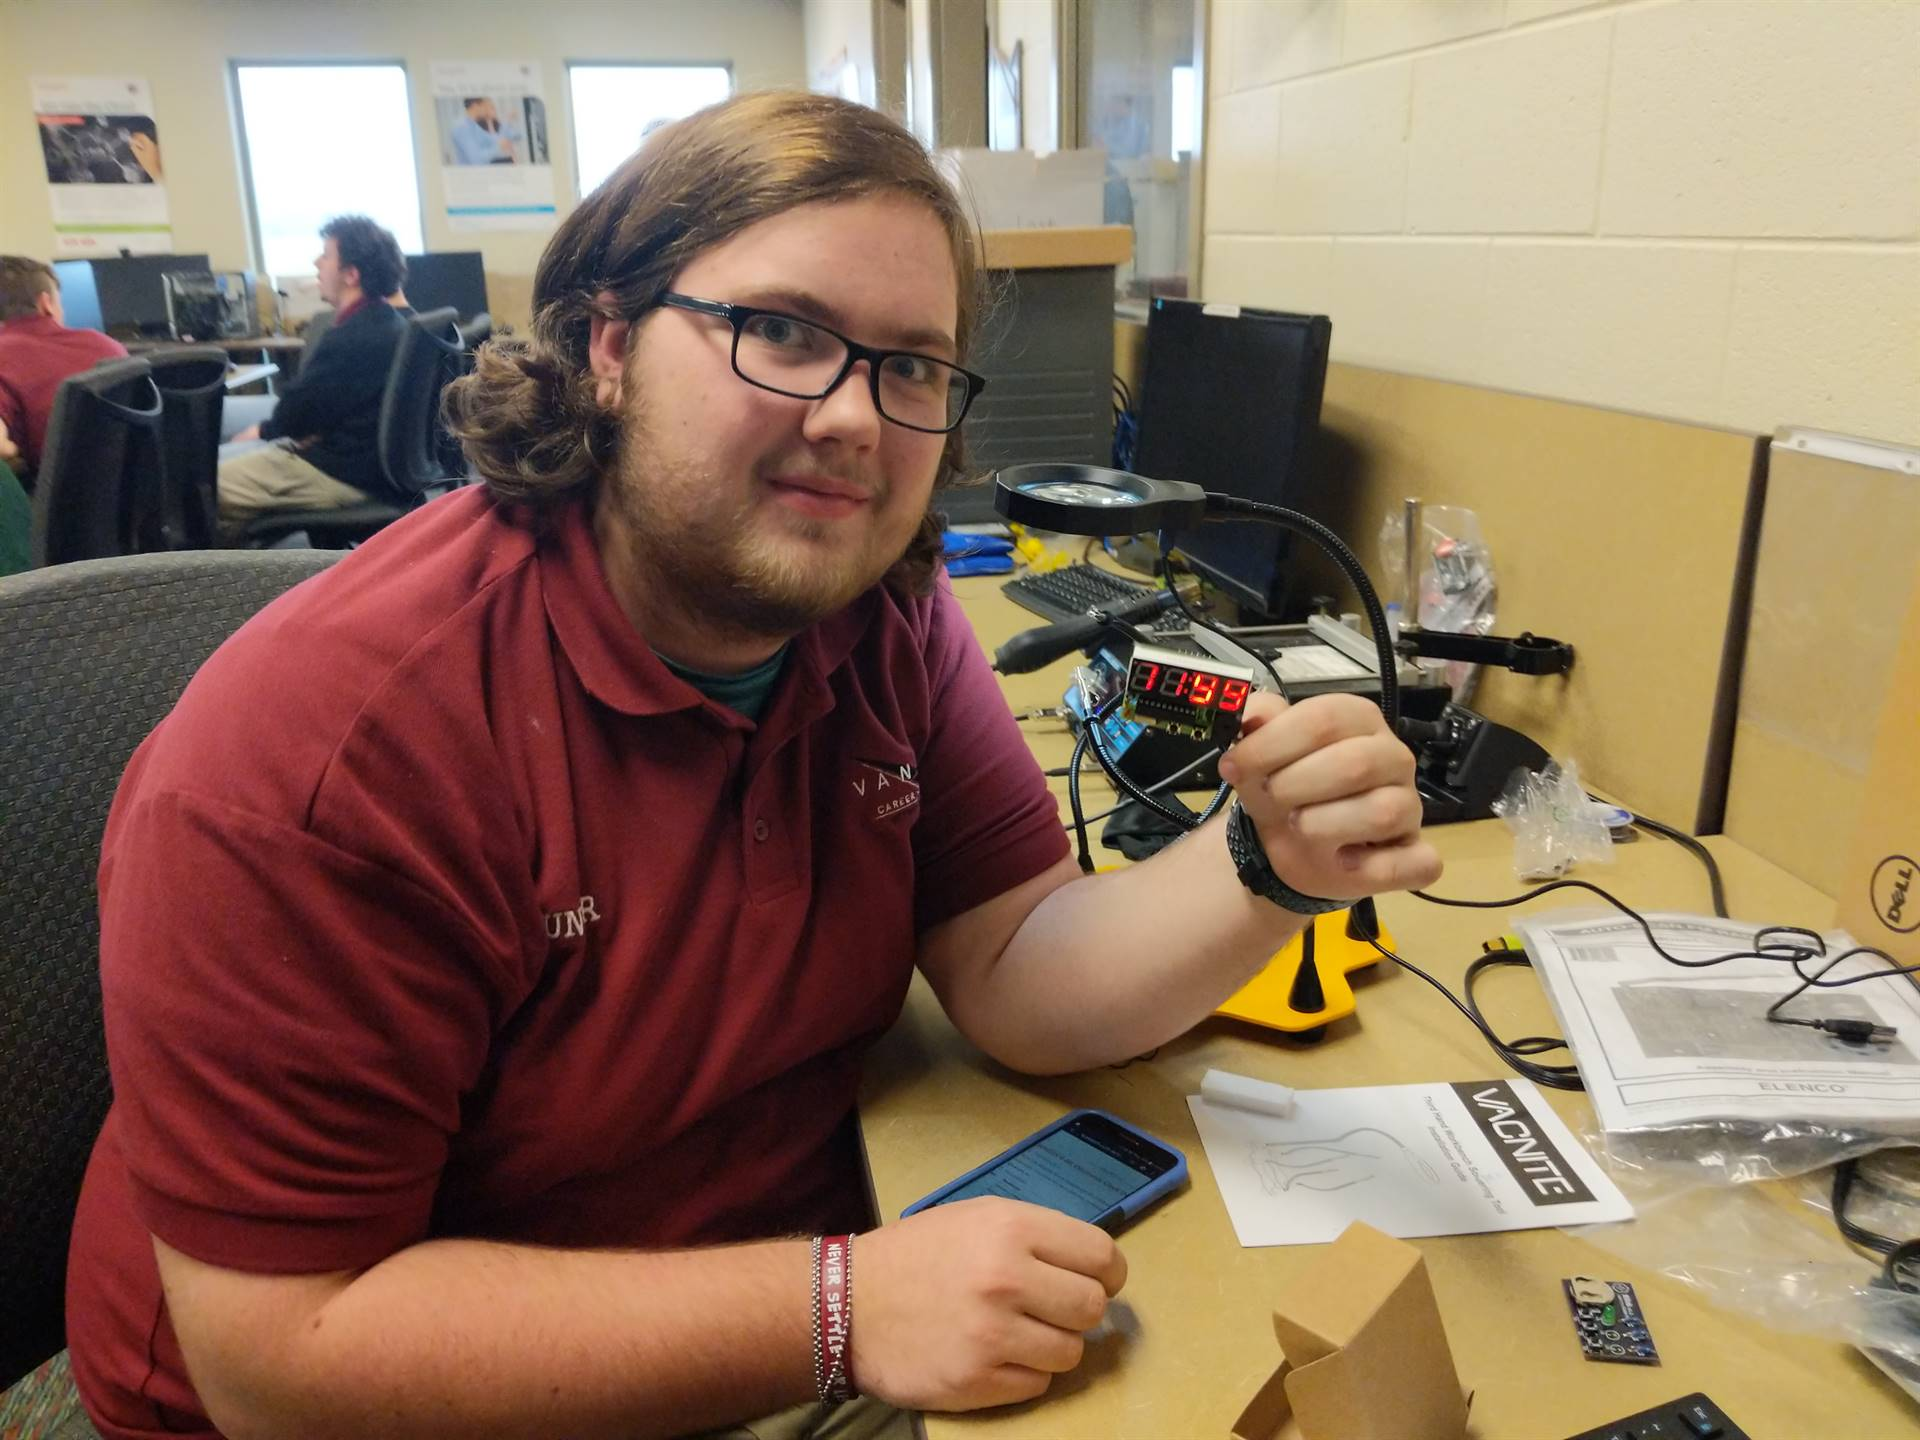 Network systems student uses a soldering tool on an alarm clock.